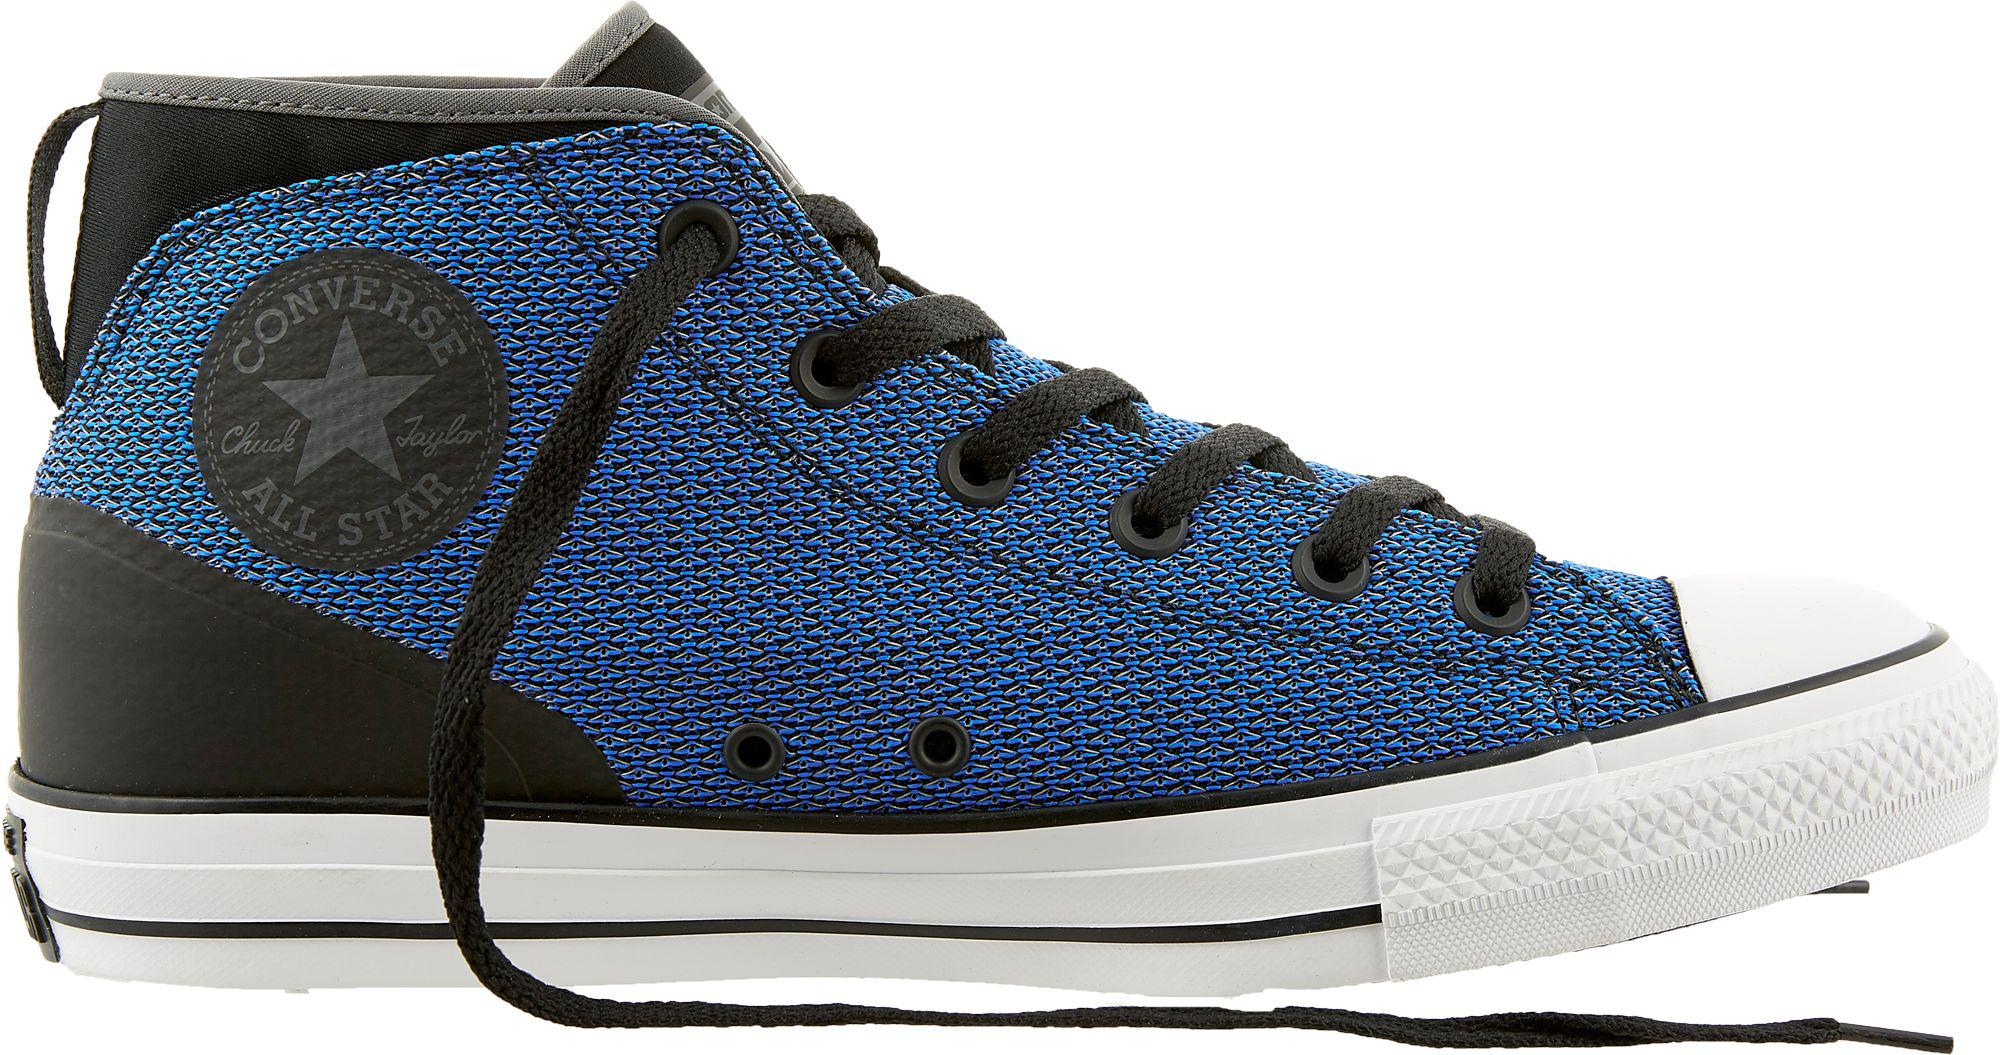 6df39af1045b Lyst - Converse Chuck Taylor All Star Syde Street Mid-top Casual ...